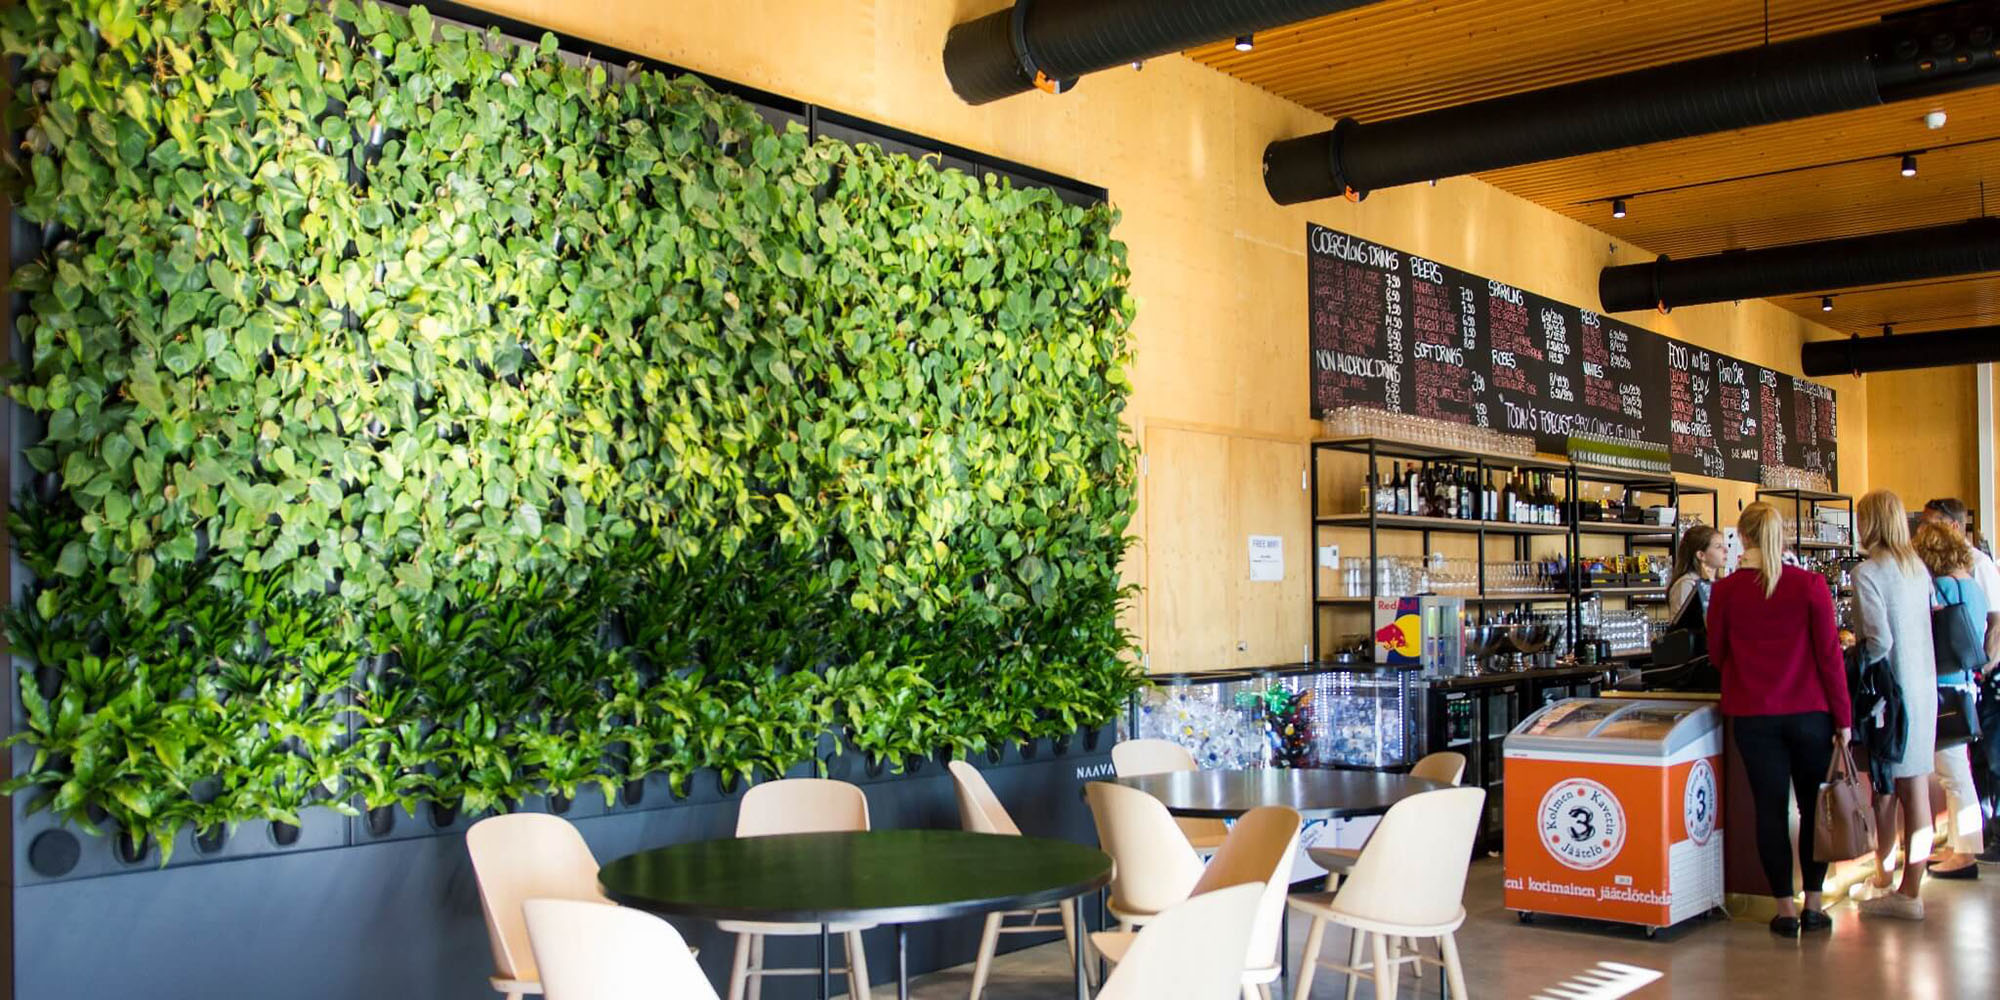 Living green wall display inside a cafe.